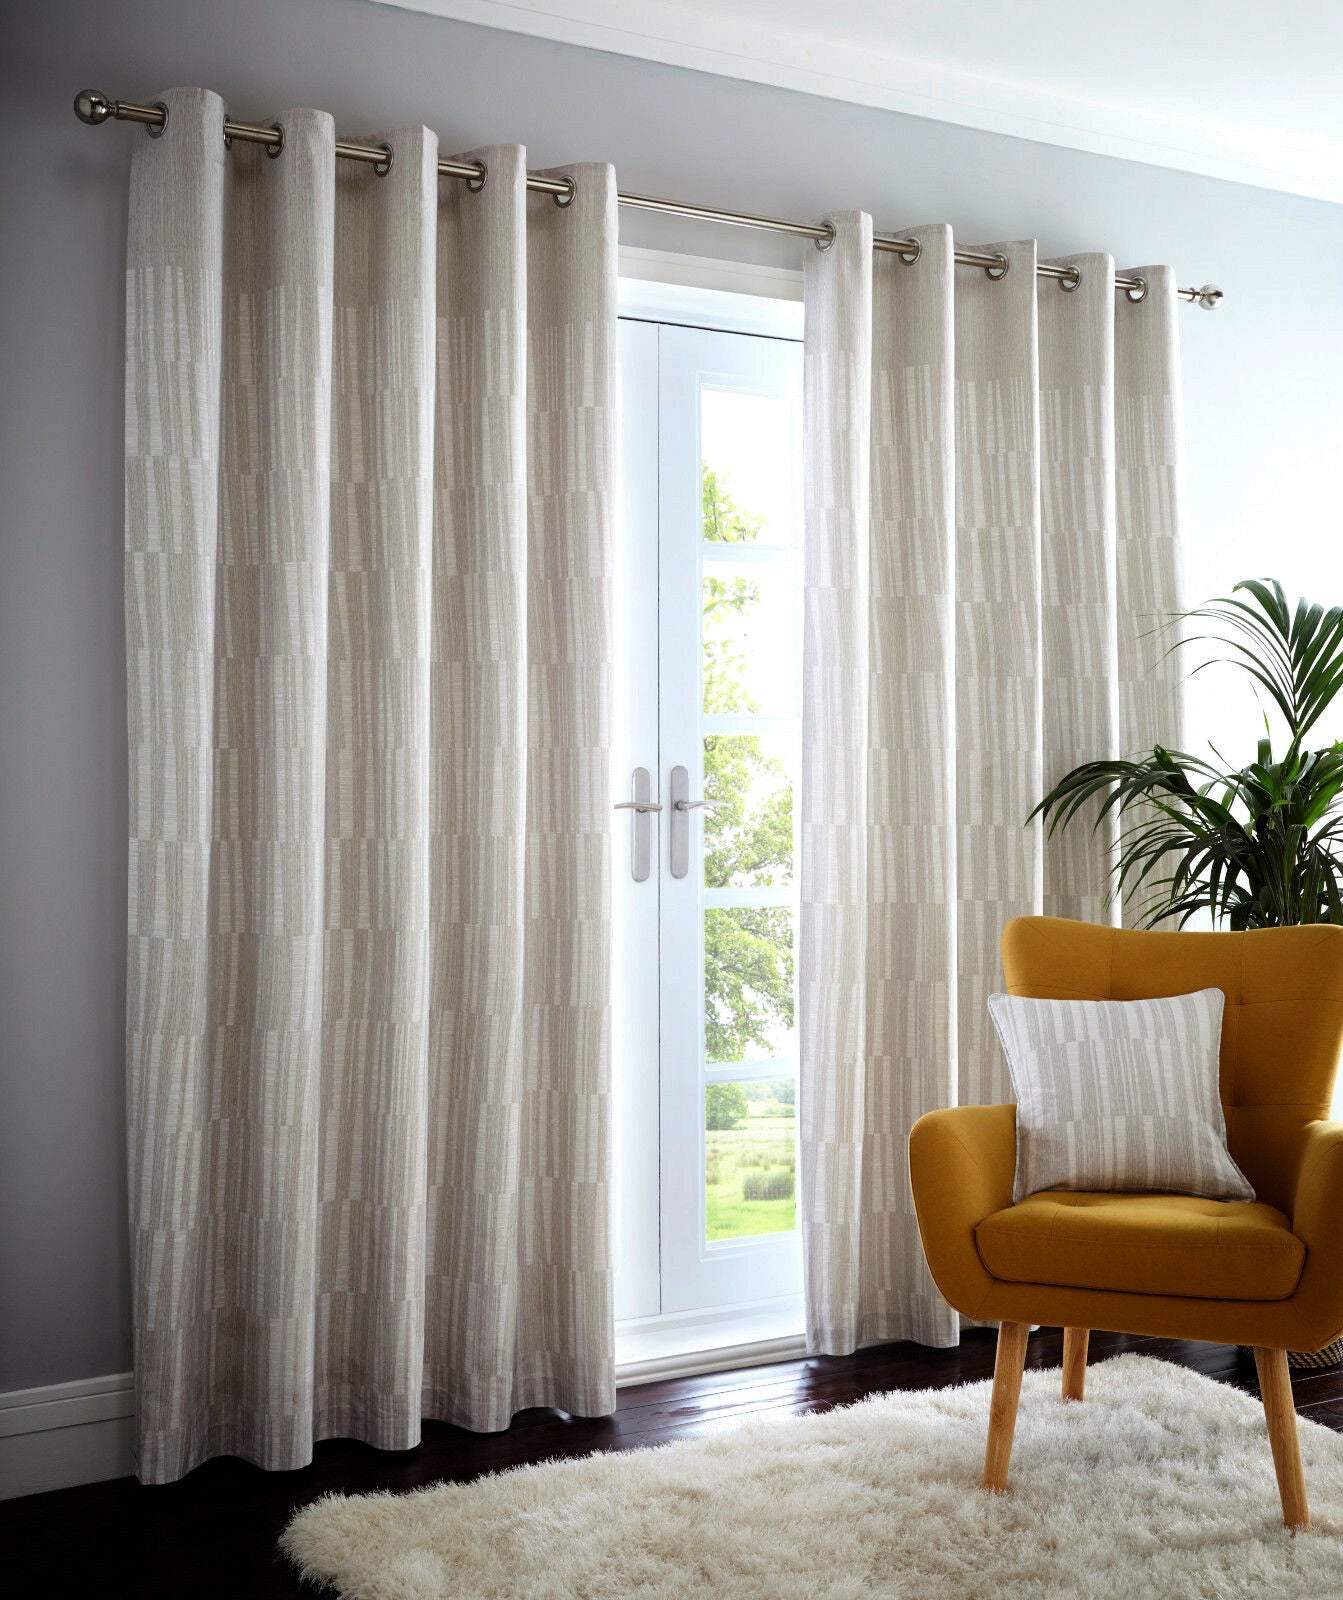 Detriot Lined curtains with eyelet ring tops in beige ivory